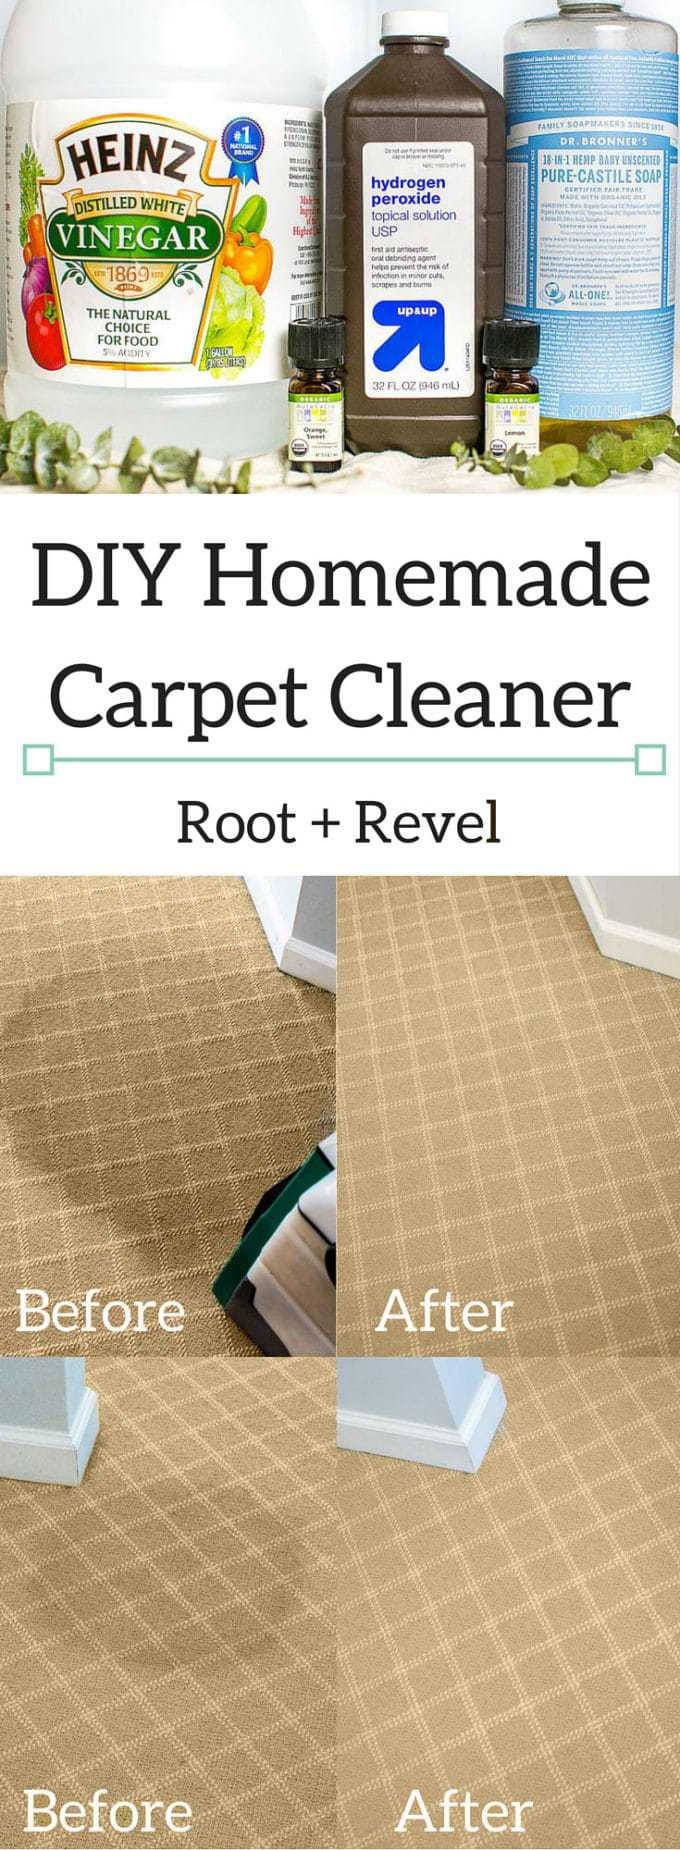 Diy homemade carpet cleaner toss toxic cleaners and dangerous chemicals remove stains with this safe effective diy homemade solutioingenieria Gallery